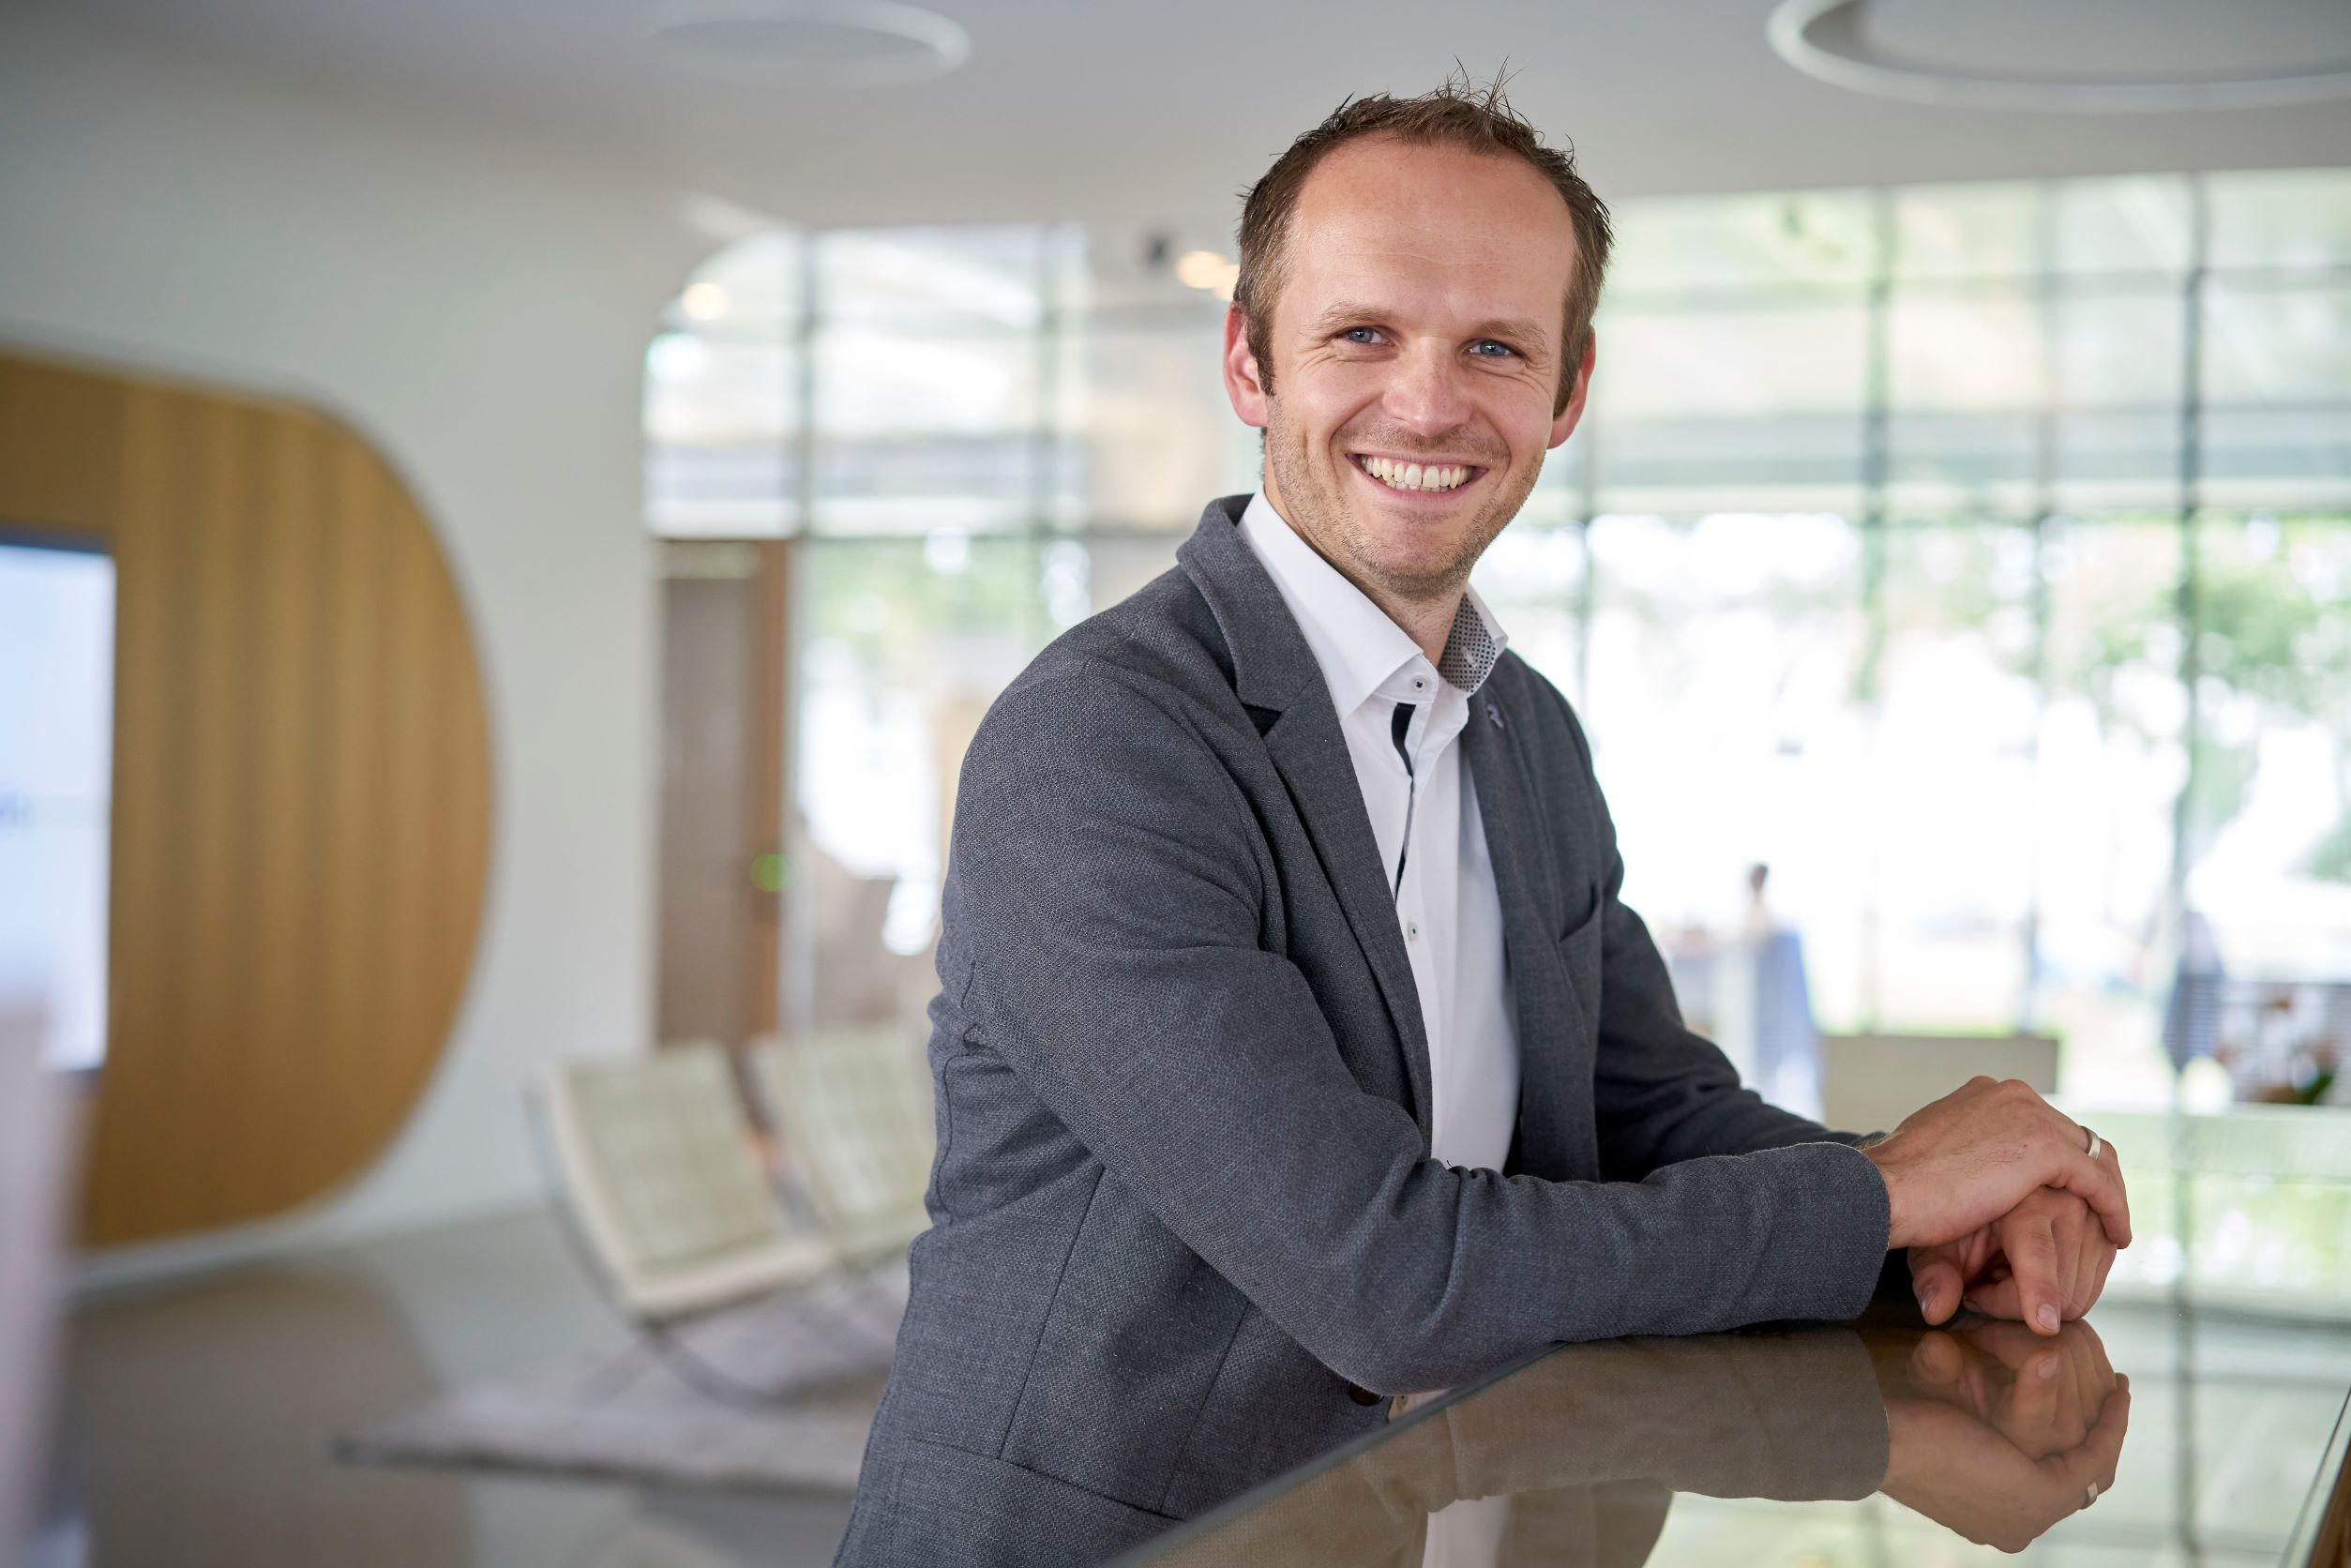 Generation change: Dr. Paul Walach becomes Managing Director of Reifenhäuser Cast Sheet Coating